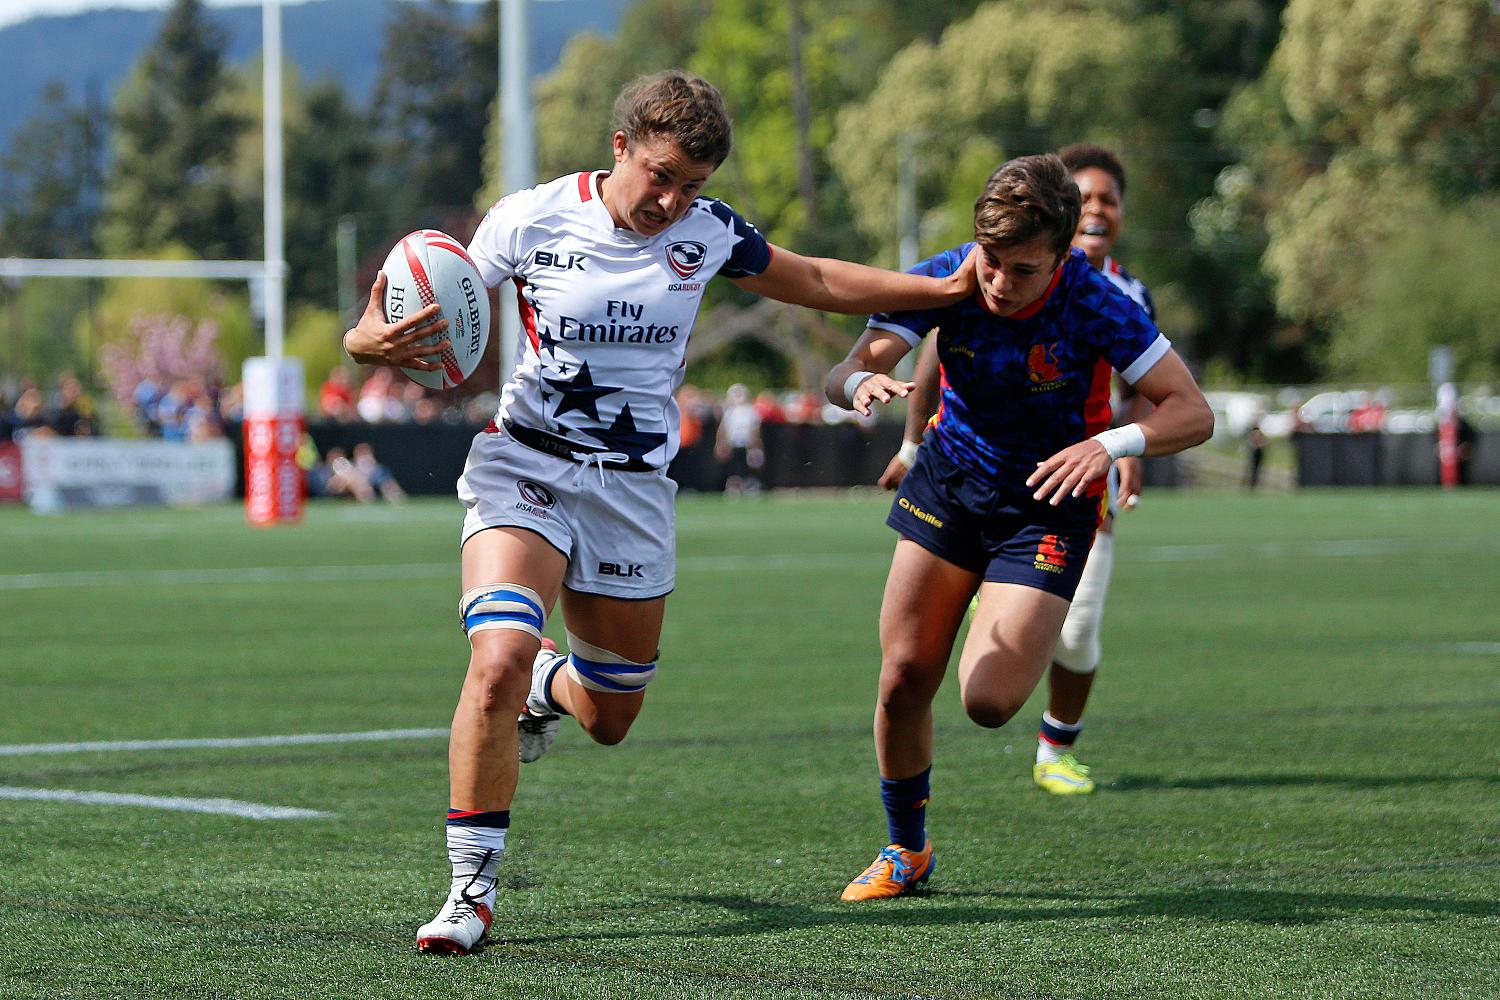 USA in action against Spain.